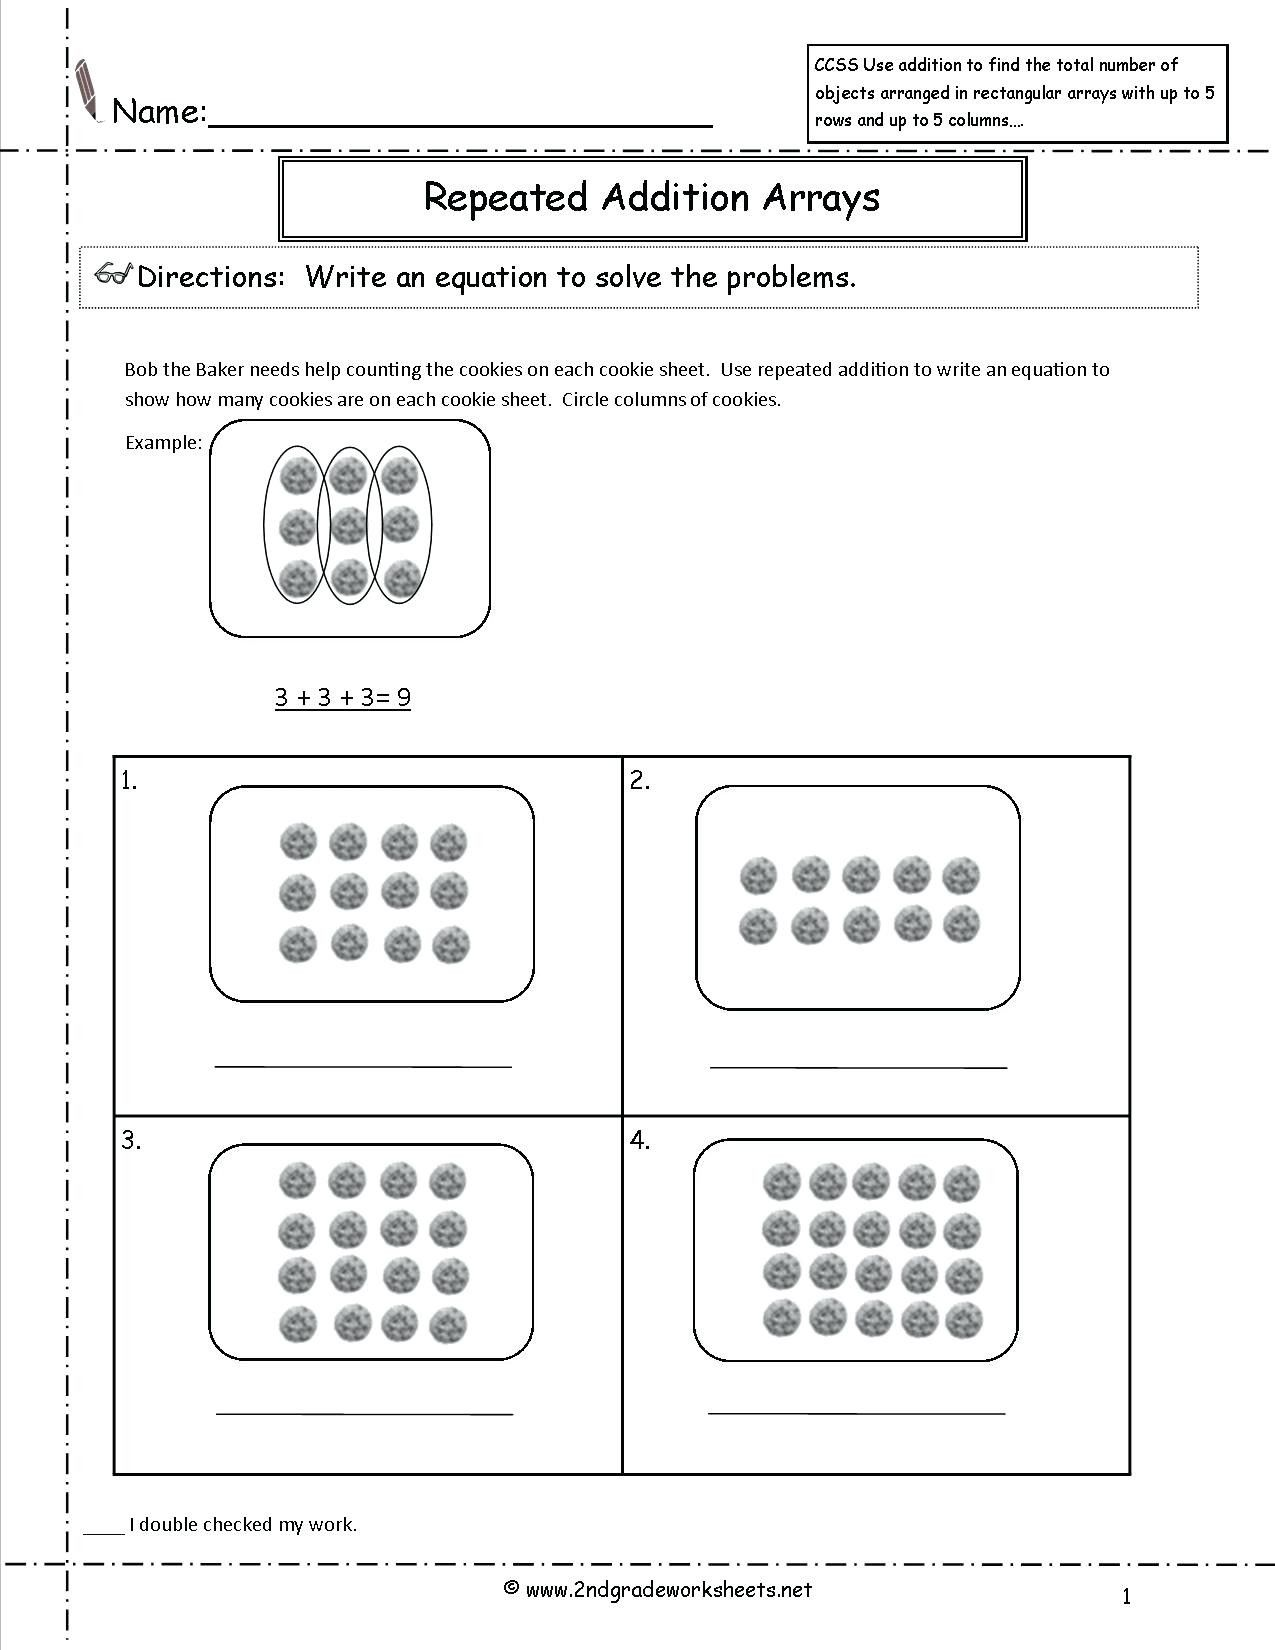 4 Free Math Worksheets Second Grade 2 Addition Add 4 2 Digit Numbers In  Columns math w…   Array worksheets [ 1650 x 1275 Pixel ]